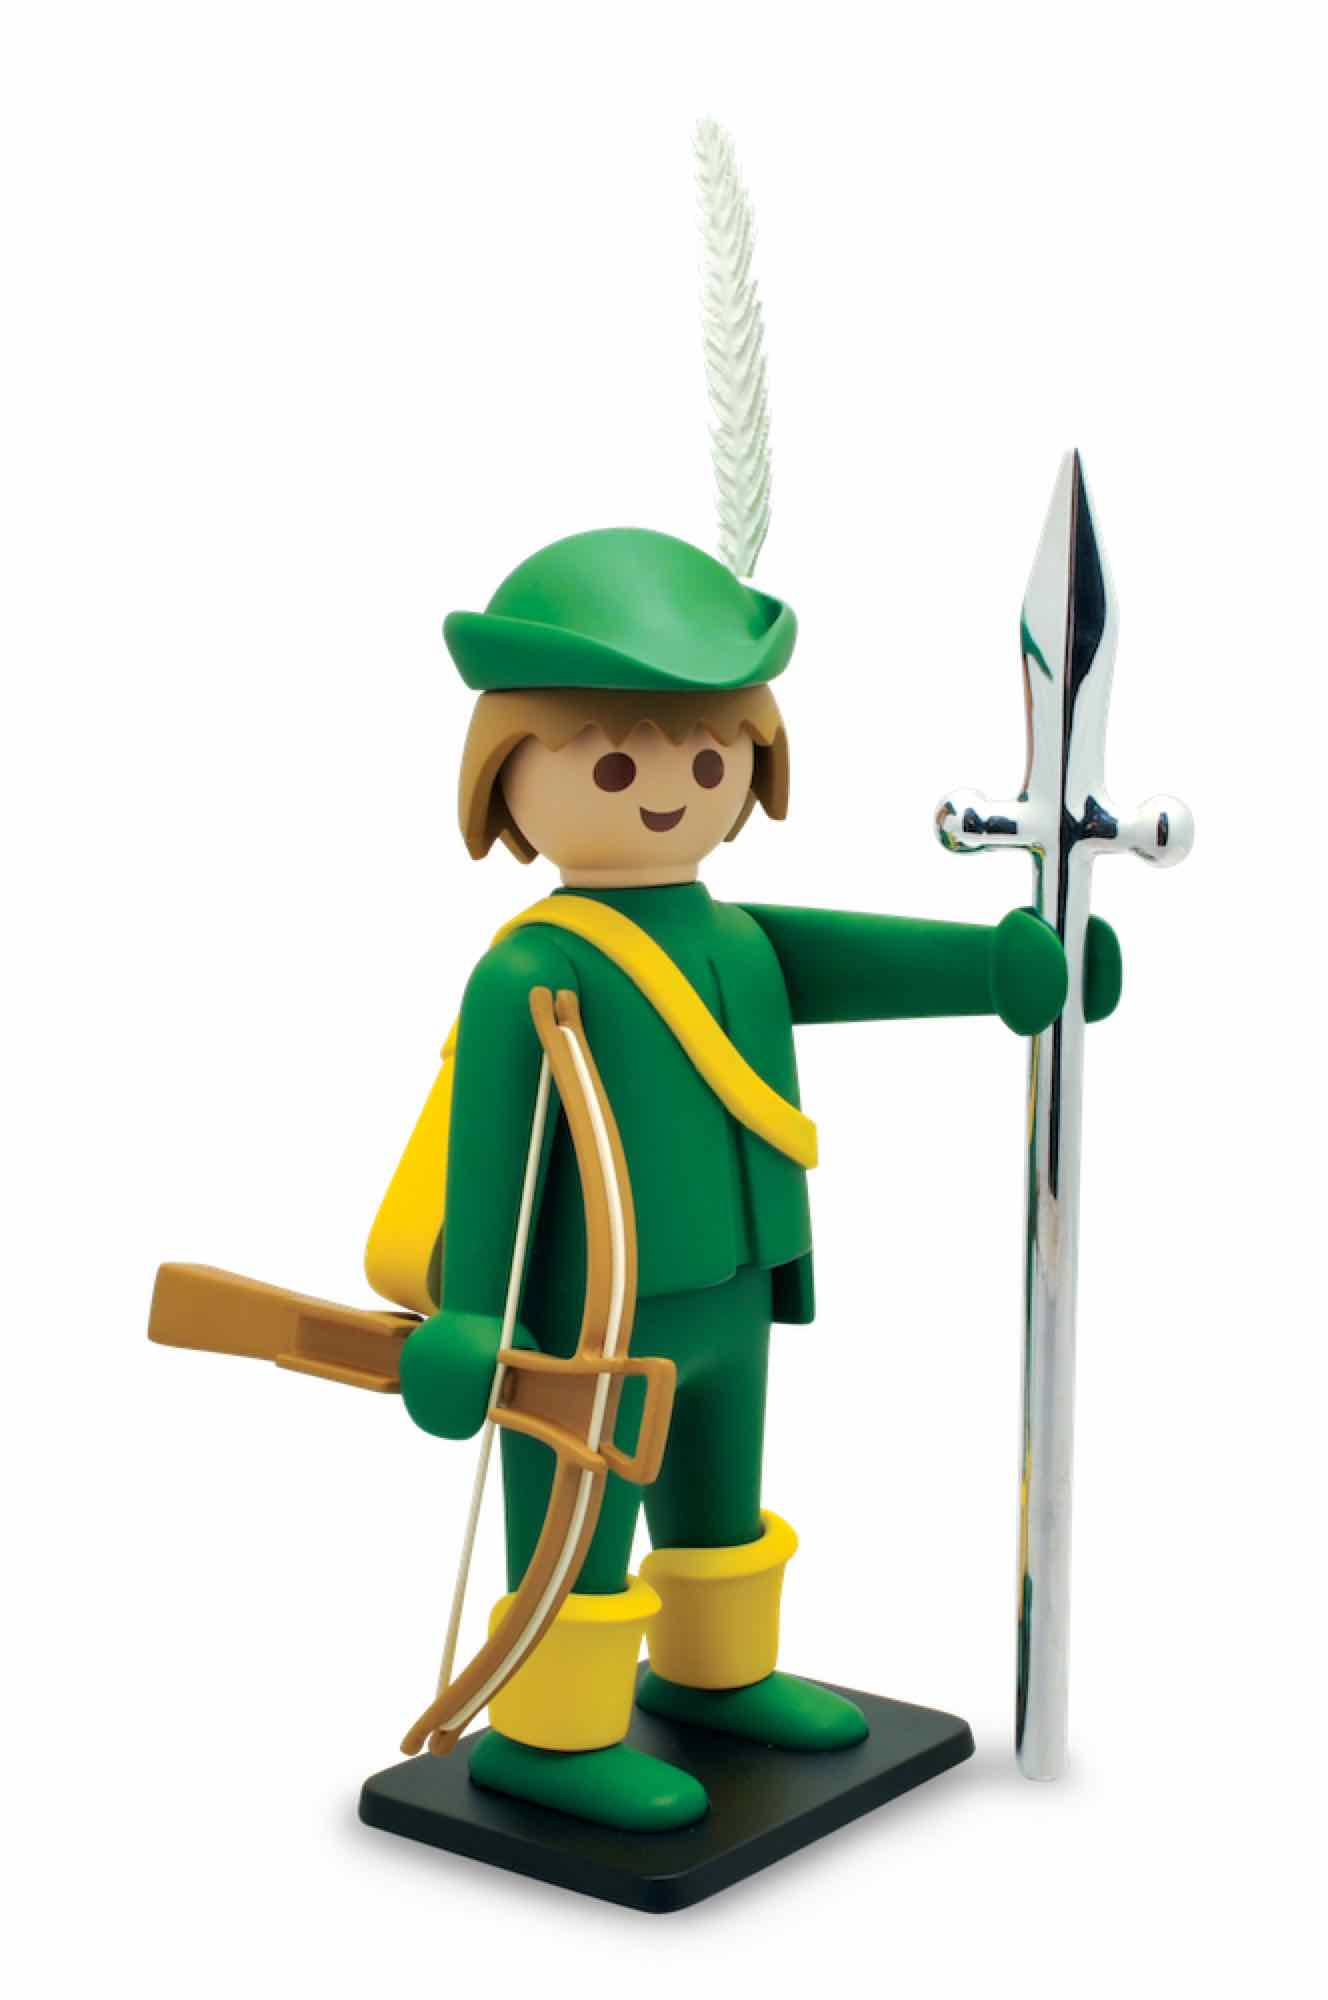 EL BALLESTERO VERDE ESTATUA ABS 25 CM PLAYMOBIL COLLECTOYS